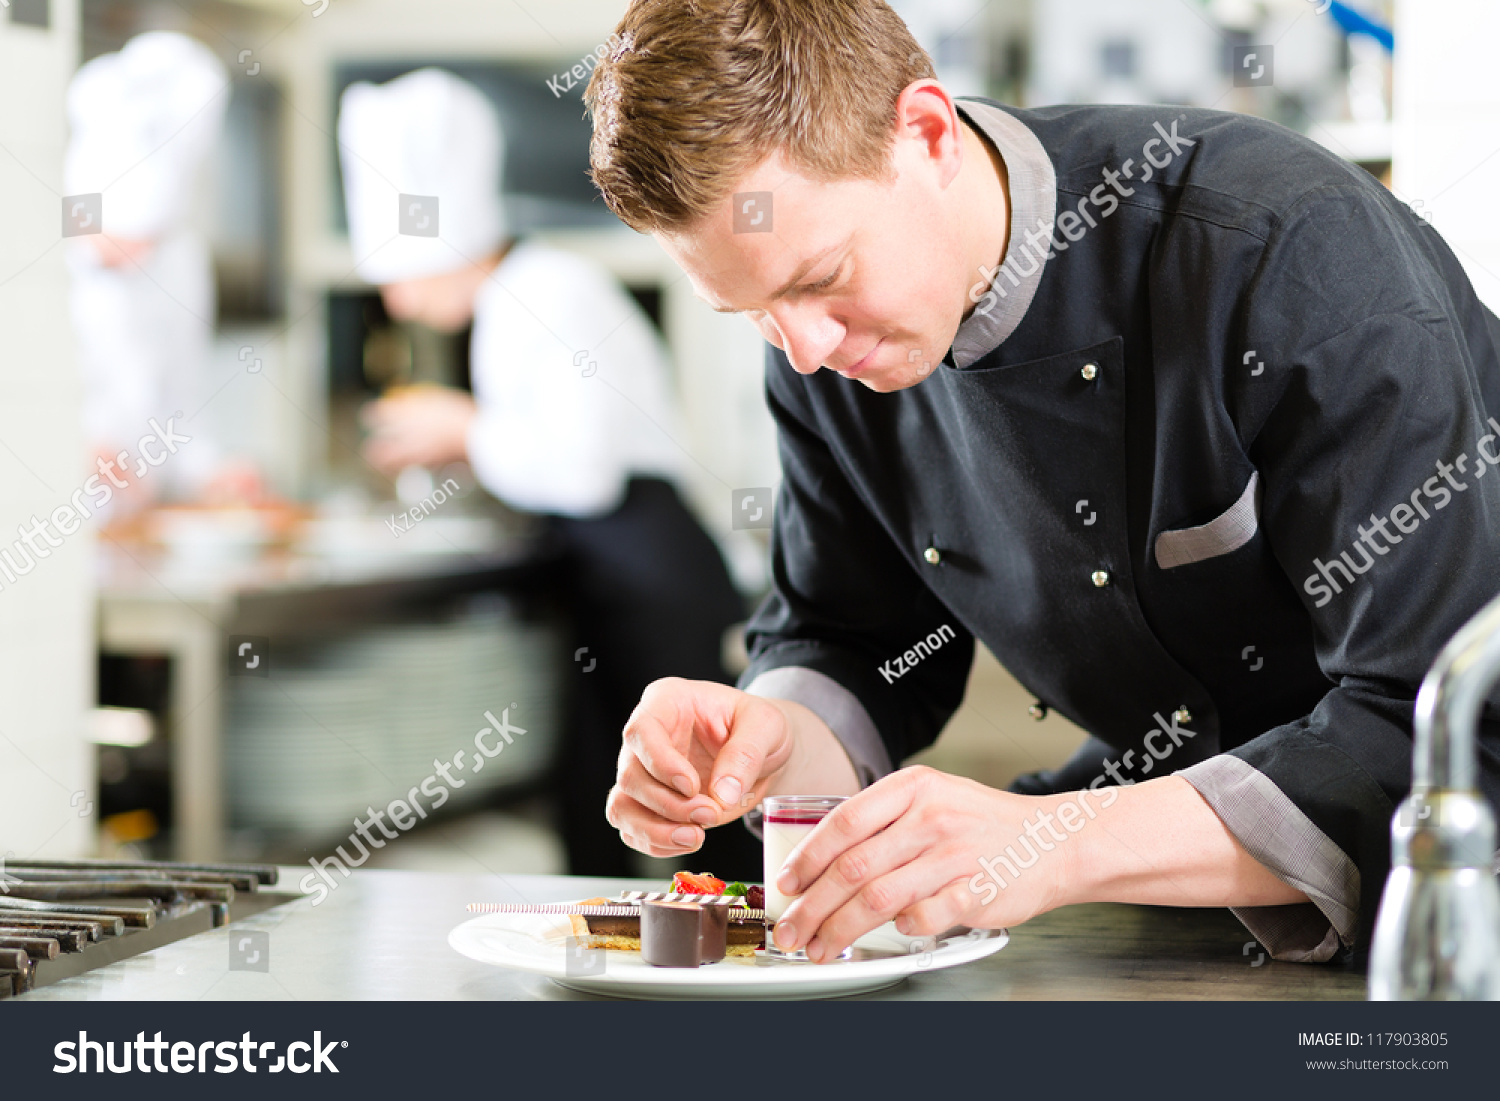 Chef Resume Sample%0A Electricians helper resume Chef Resumes pastry chef resume template Chef  Resume Sample Electricians helper resume Chef